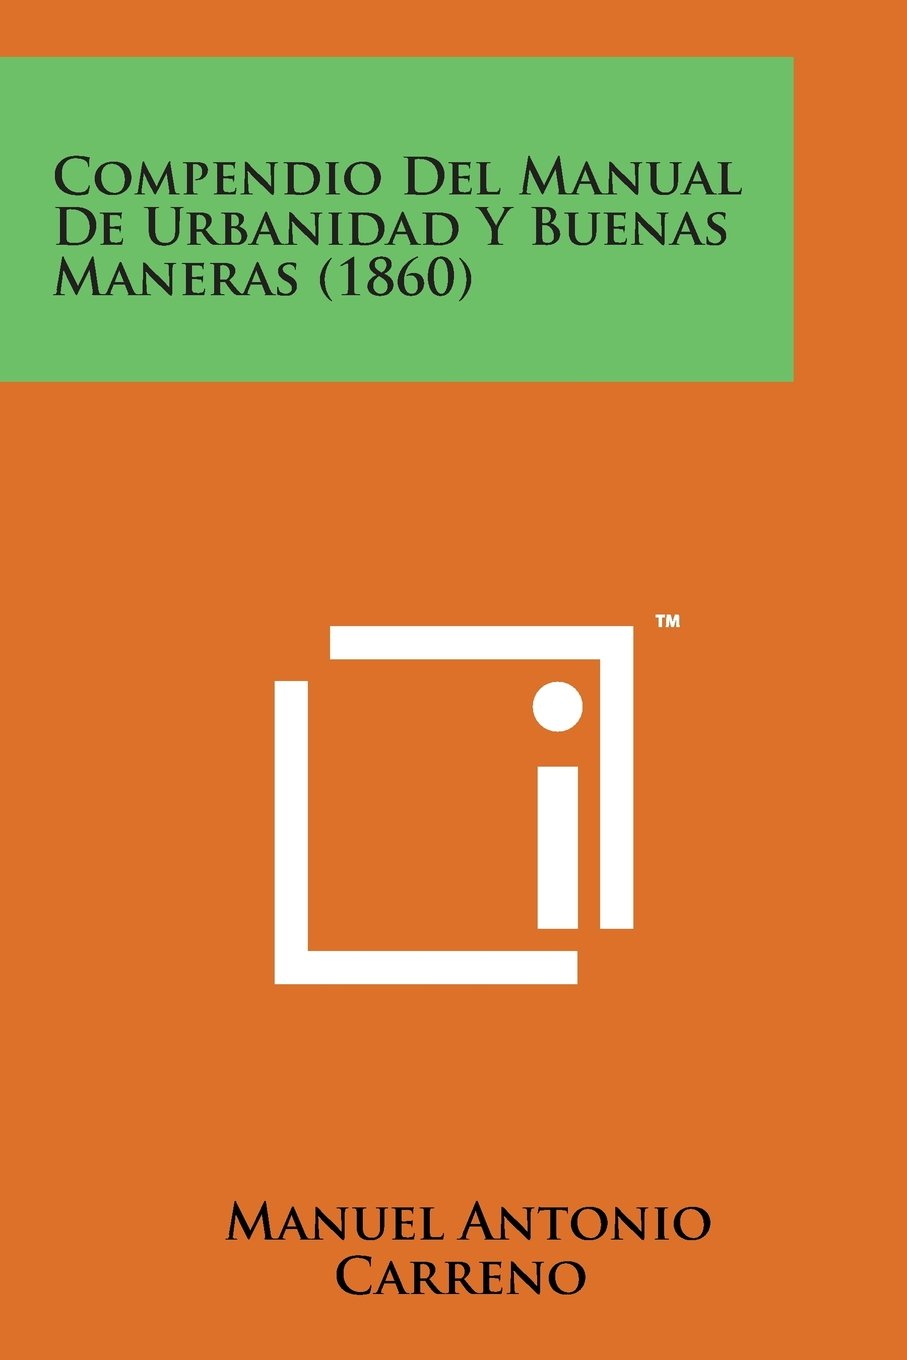 Buy Compendio del Manual de Urbanidad y Buenas Maneras (1860) Book Online  at Low Prices in India | Compendio del Manual de Urbanidad y Buenas Maneras  (1860) ...